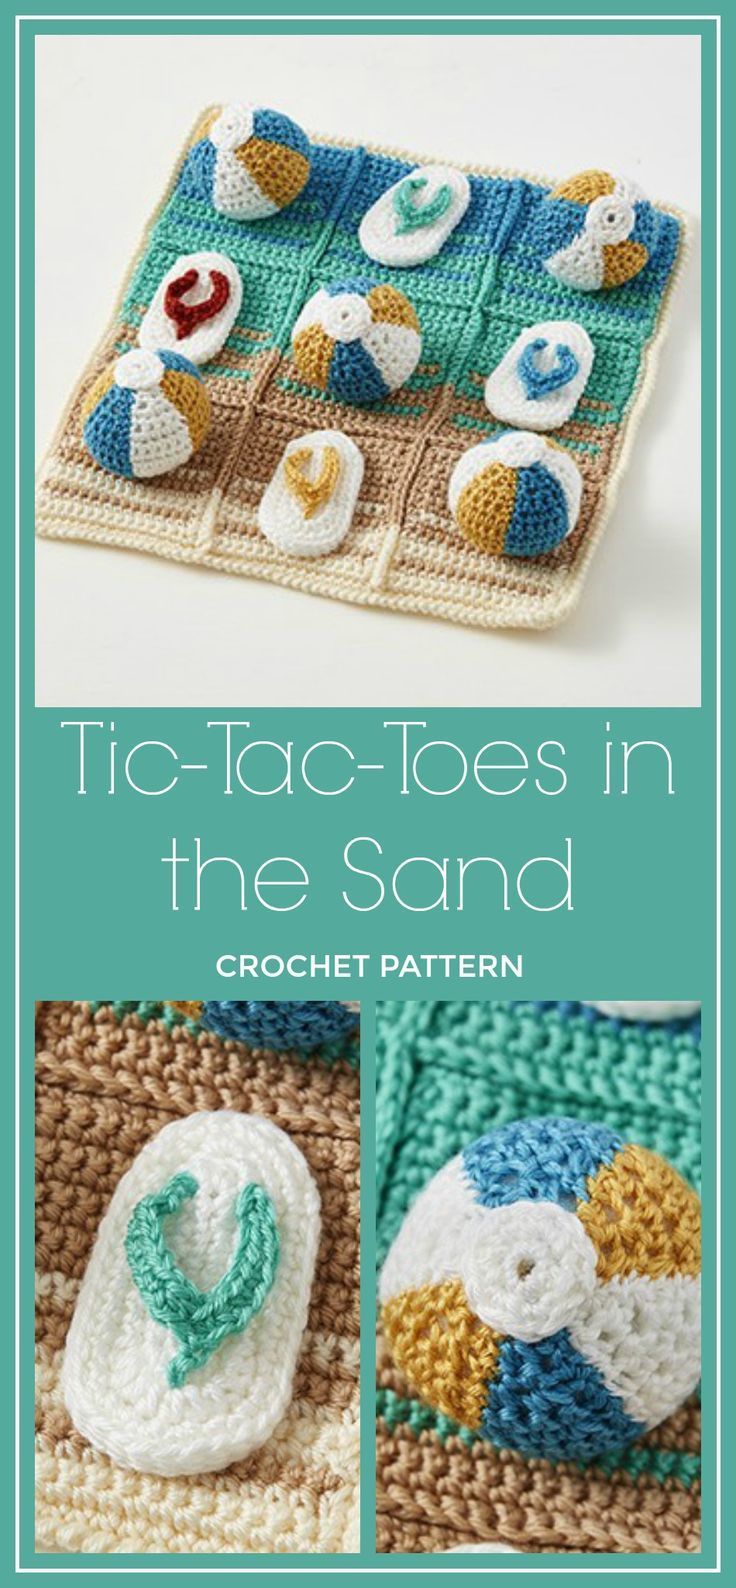 Fun Crochet Pattern The Whole Family Will Enjoy A Game Of Tic Tac